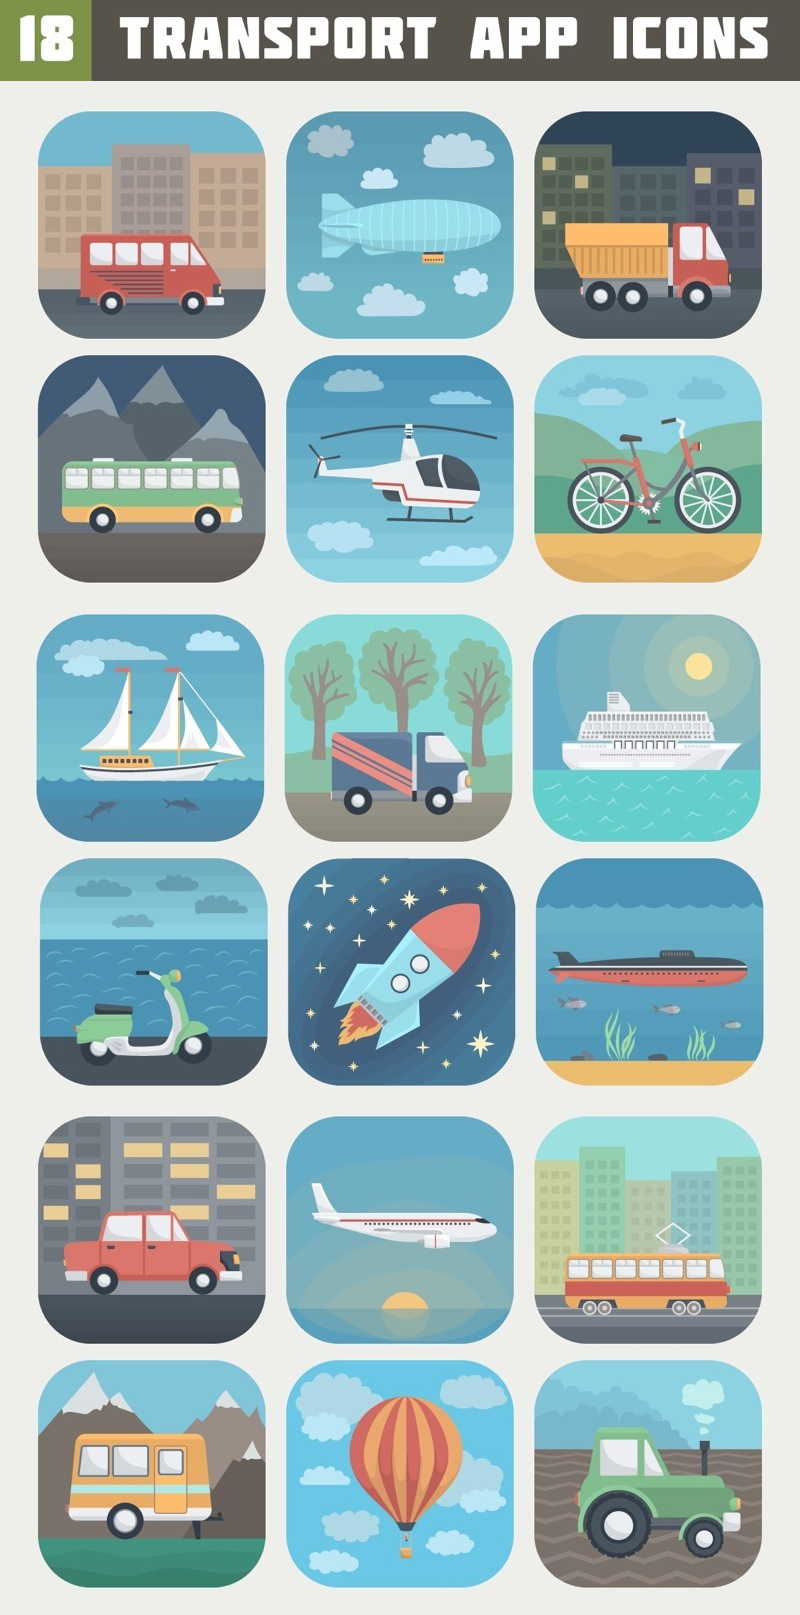 18 Detailed Transport App Icons in Trendy Flat